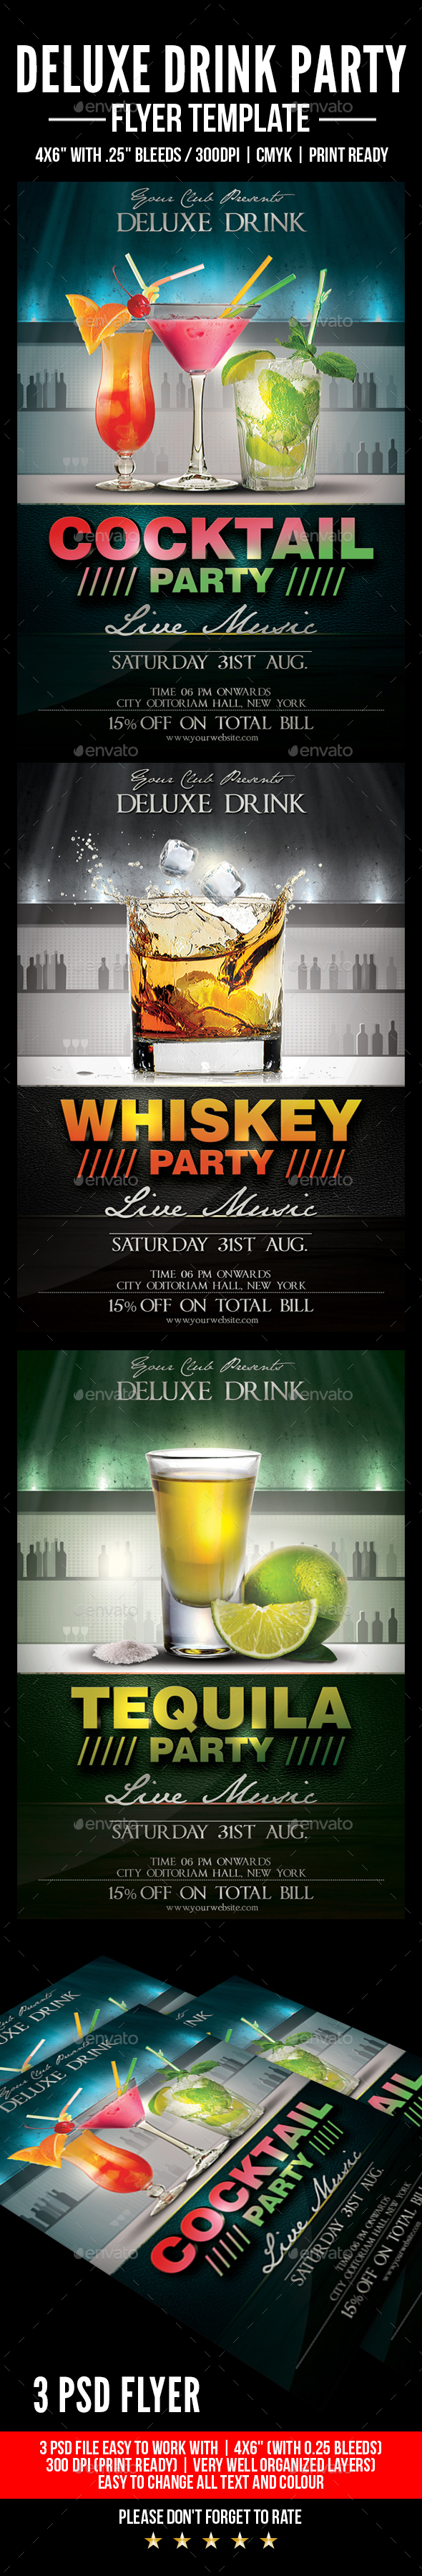 Deluxe Drink Party Flyer - Flyers Print Templates